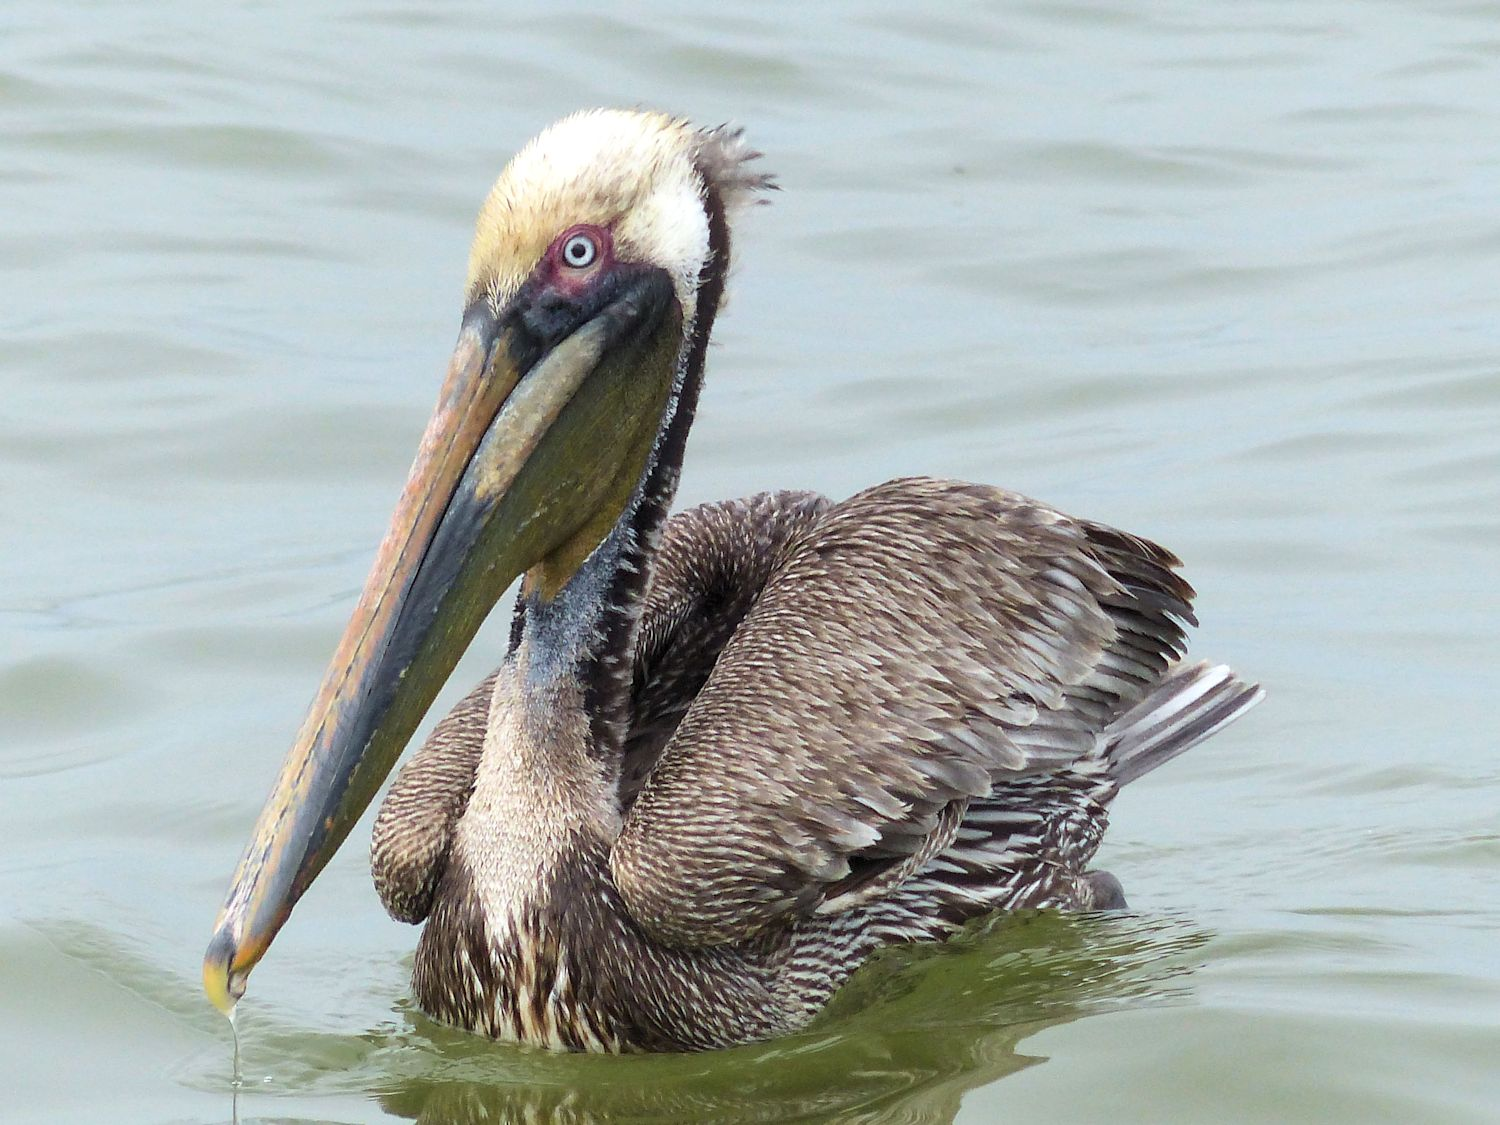 Brown Pelican floats high in the water